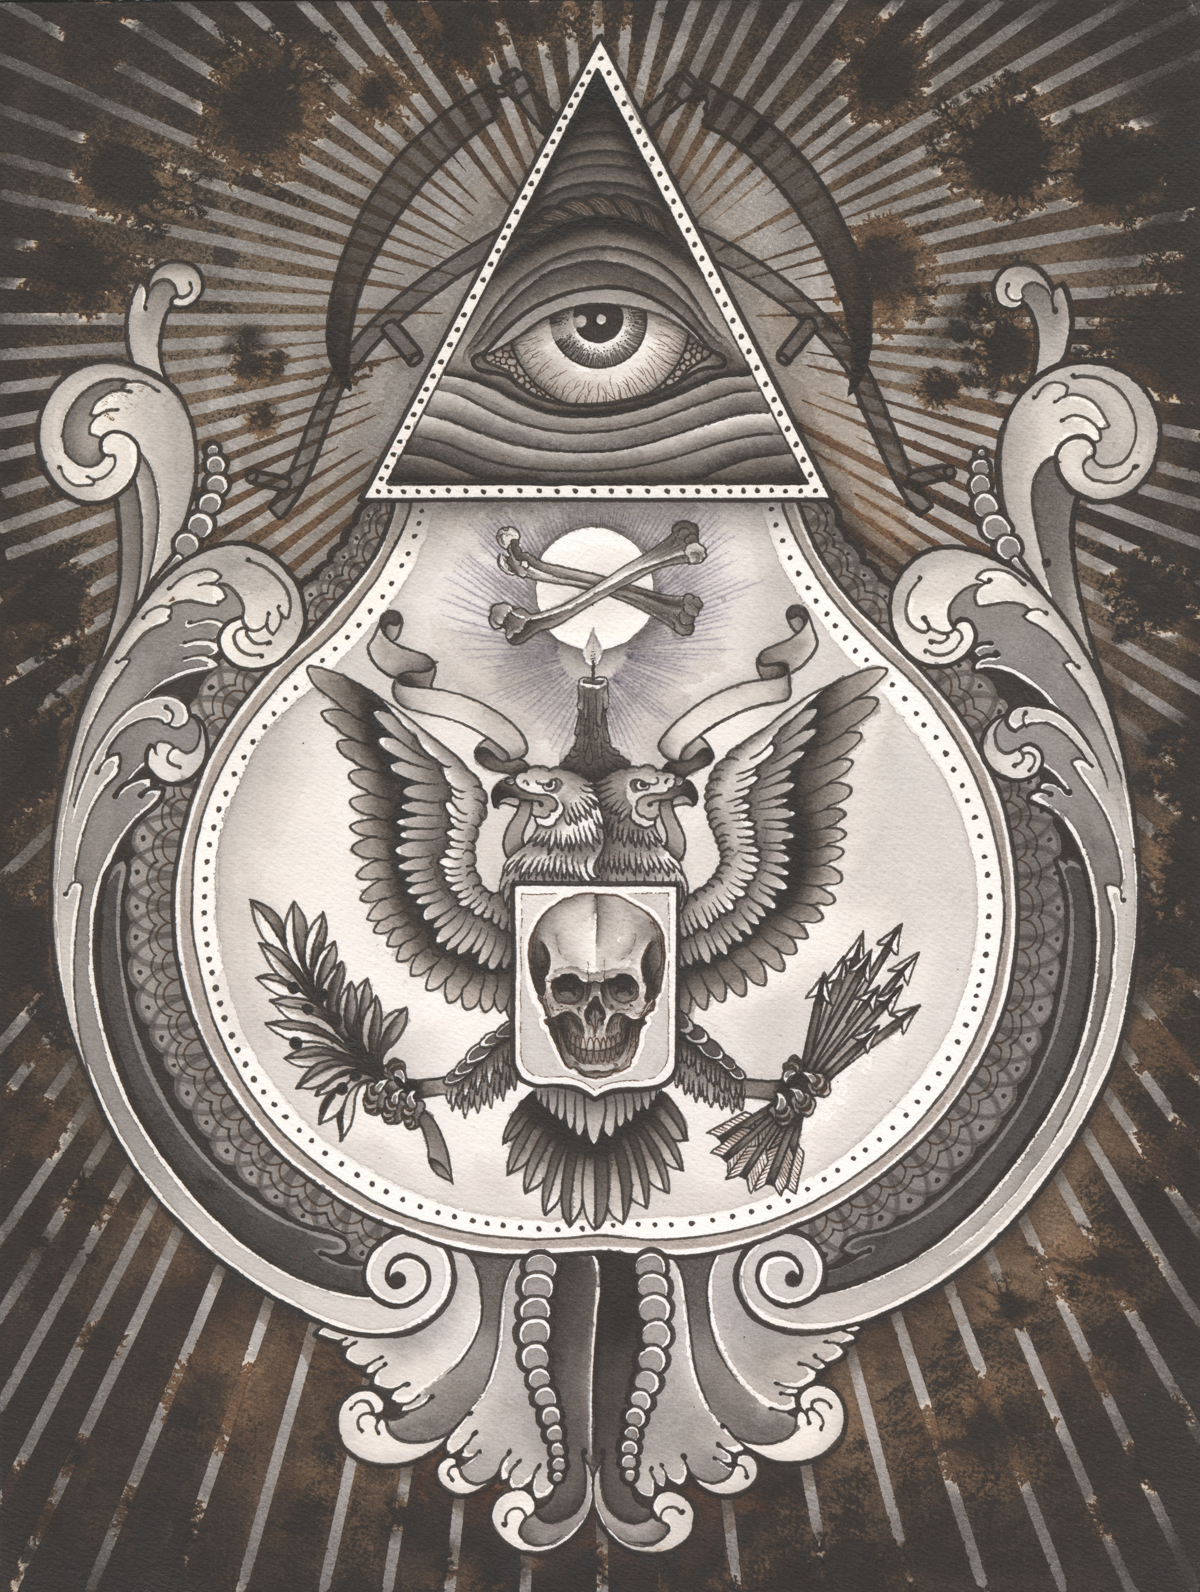 illuminati art - photo #5